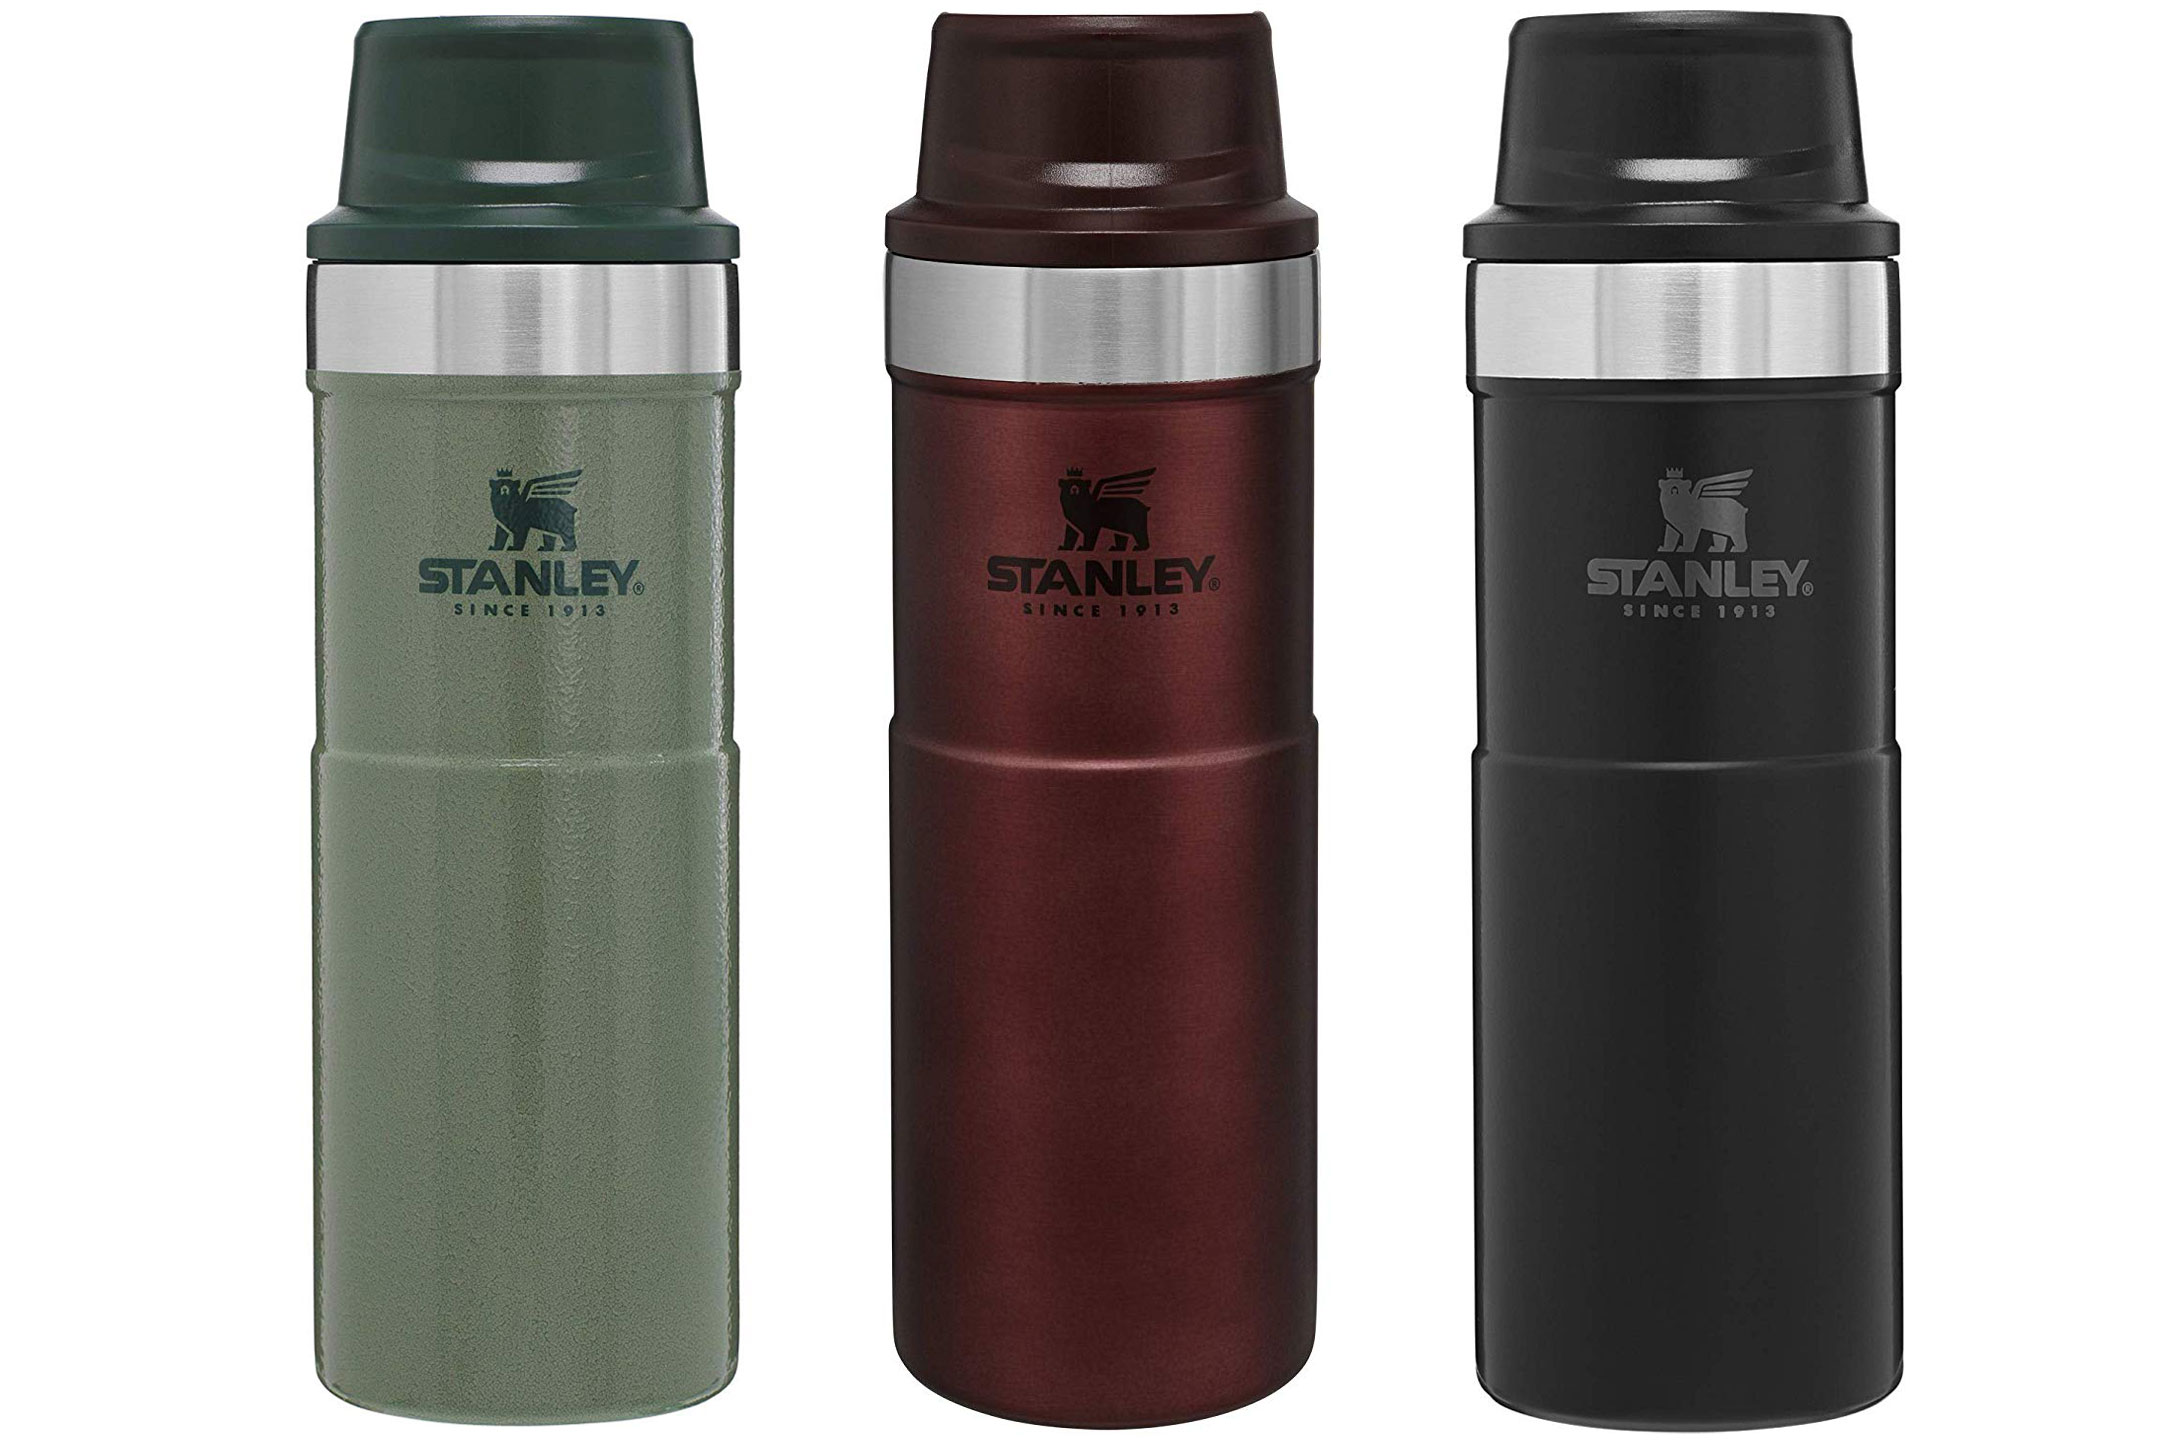 Stanley 16 oz travel mug